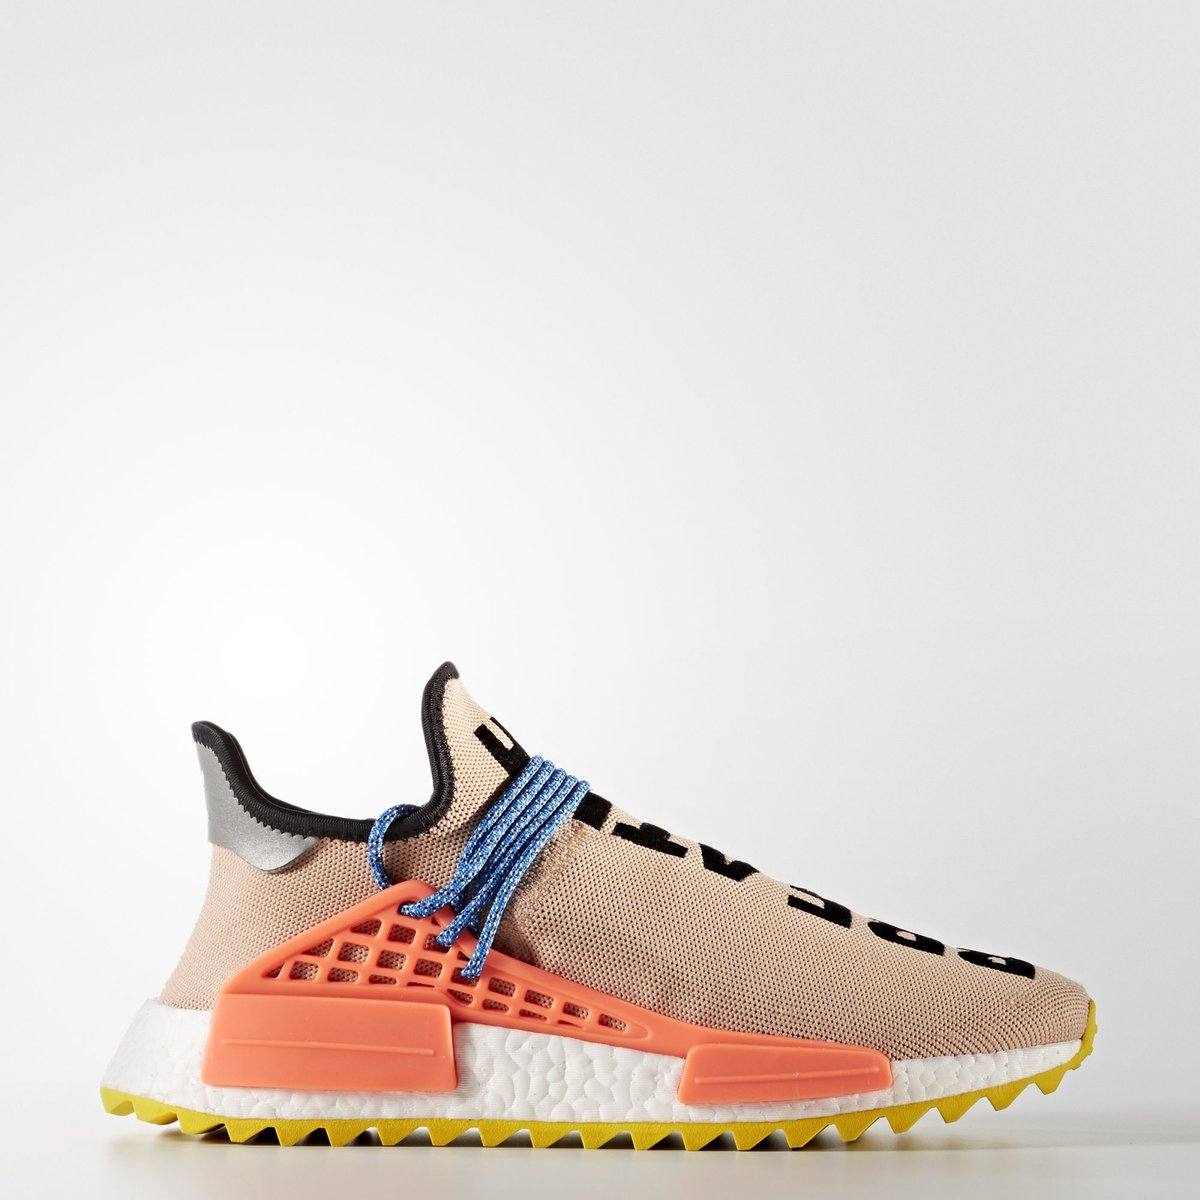 ADIDAS NMD HUMAN RACE for sale in Orlando, FL: Buy and